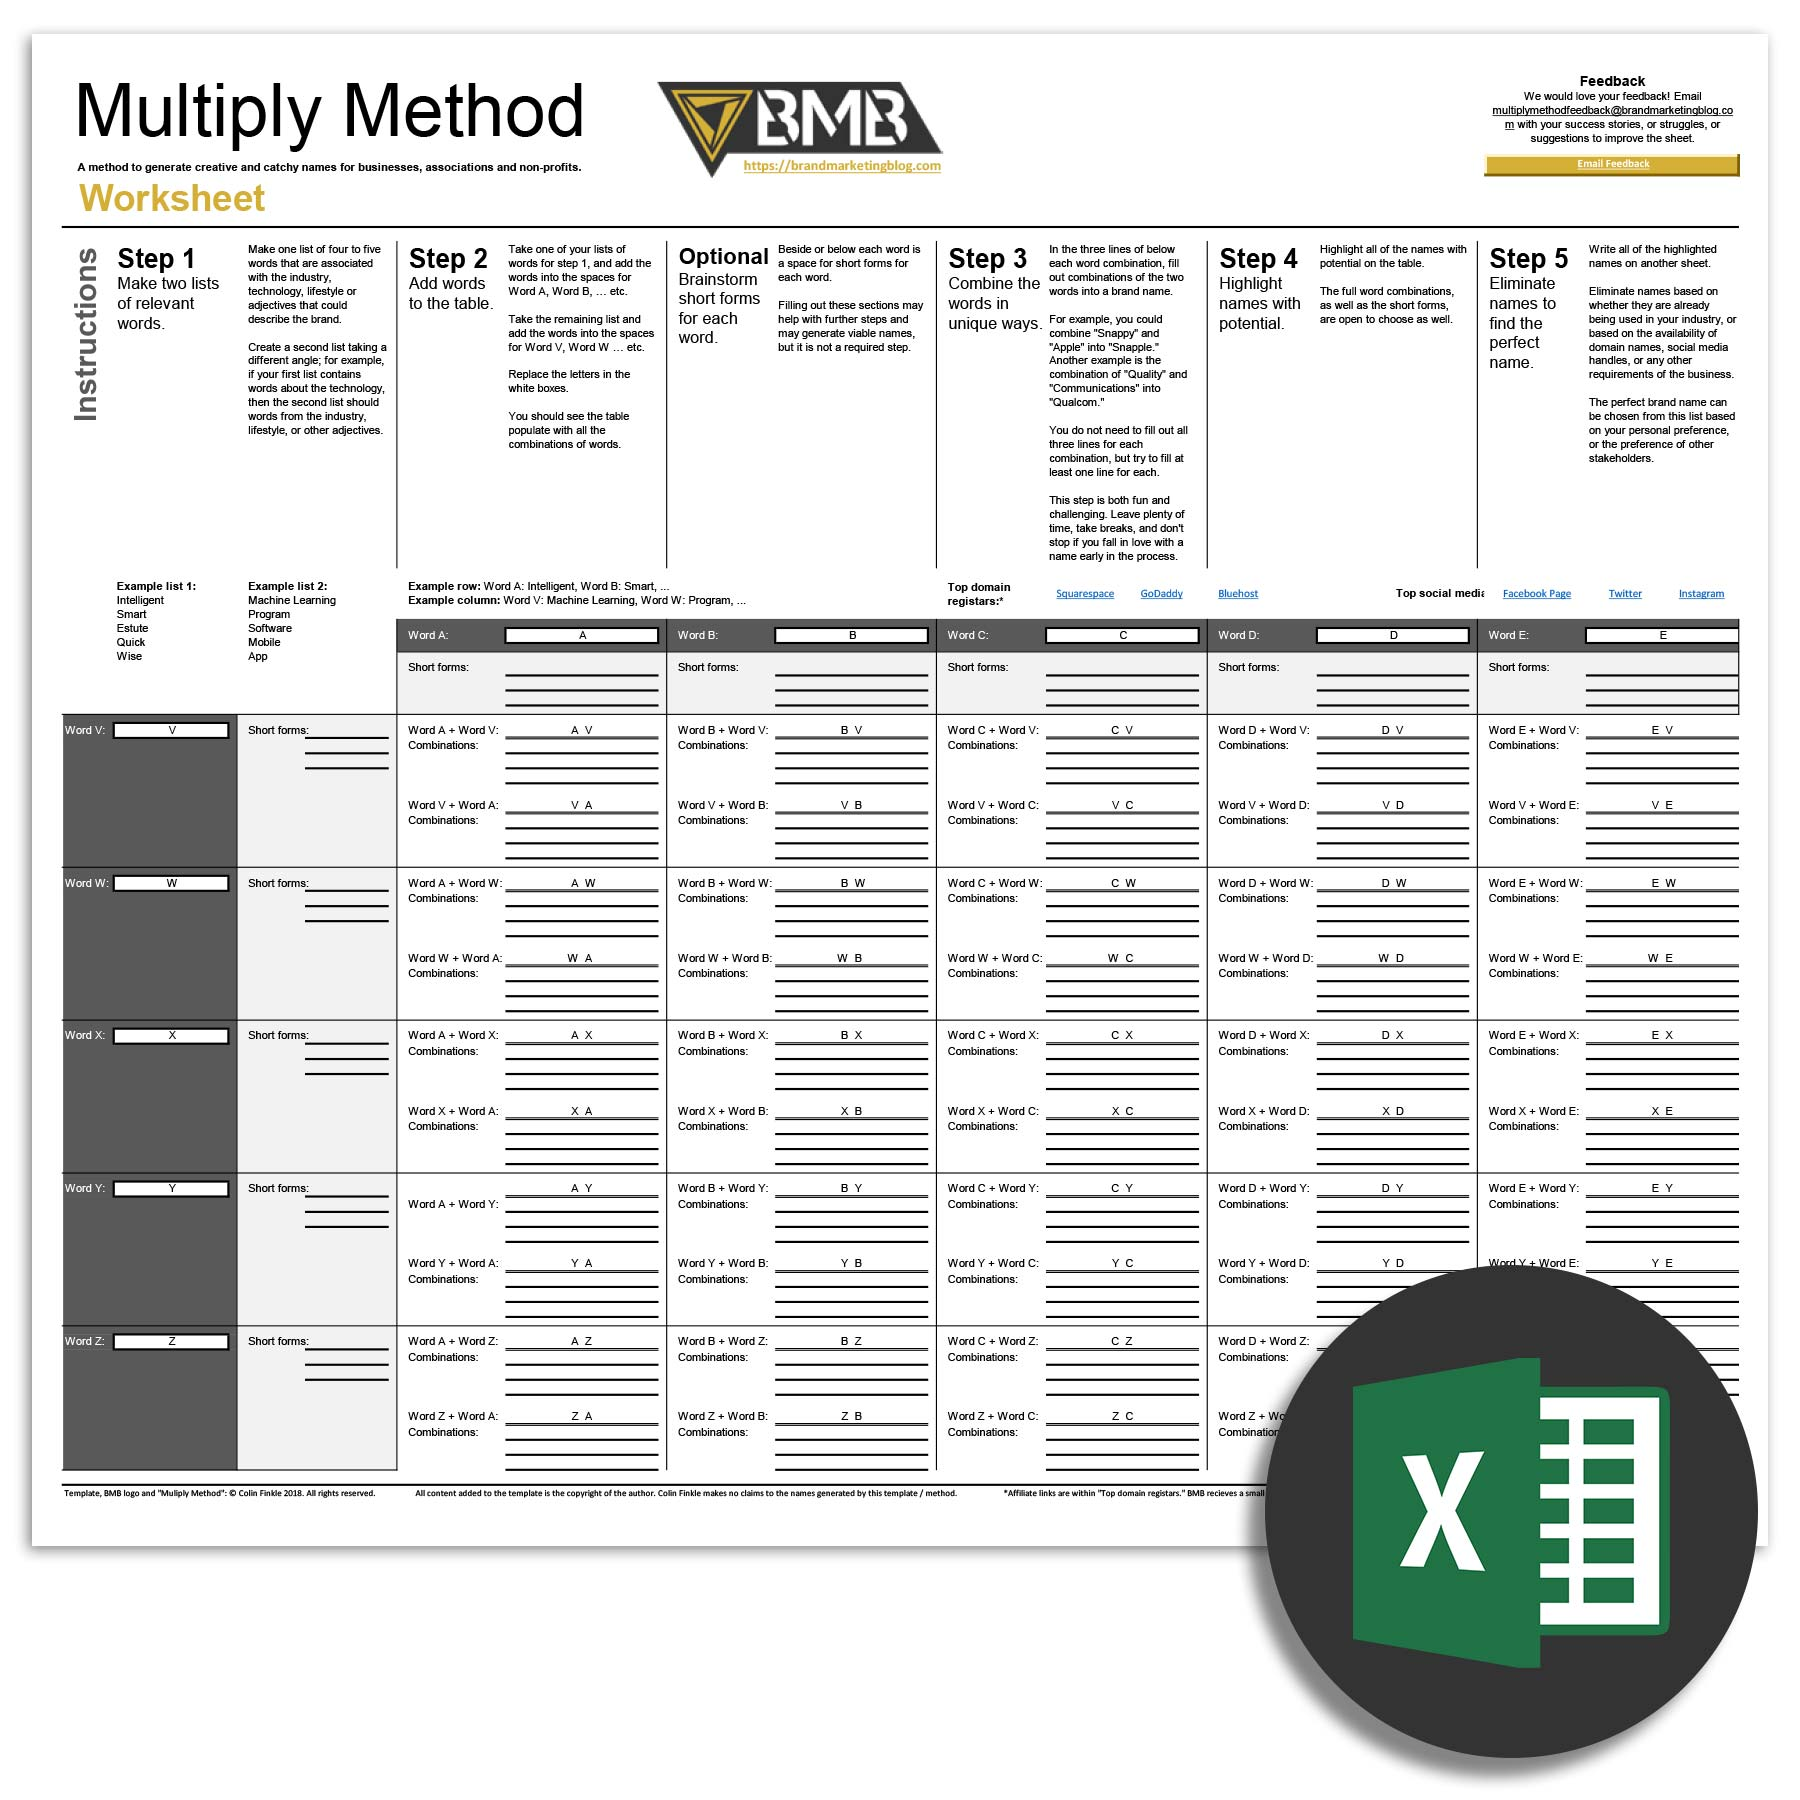 Multiply method spreadsheet excel bmb multiply method excel spreadsheet excel icon creative business name generator flashek Gallery